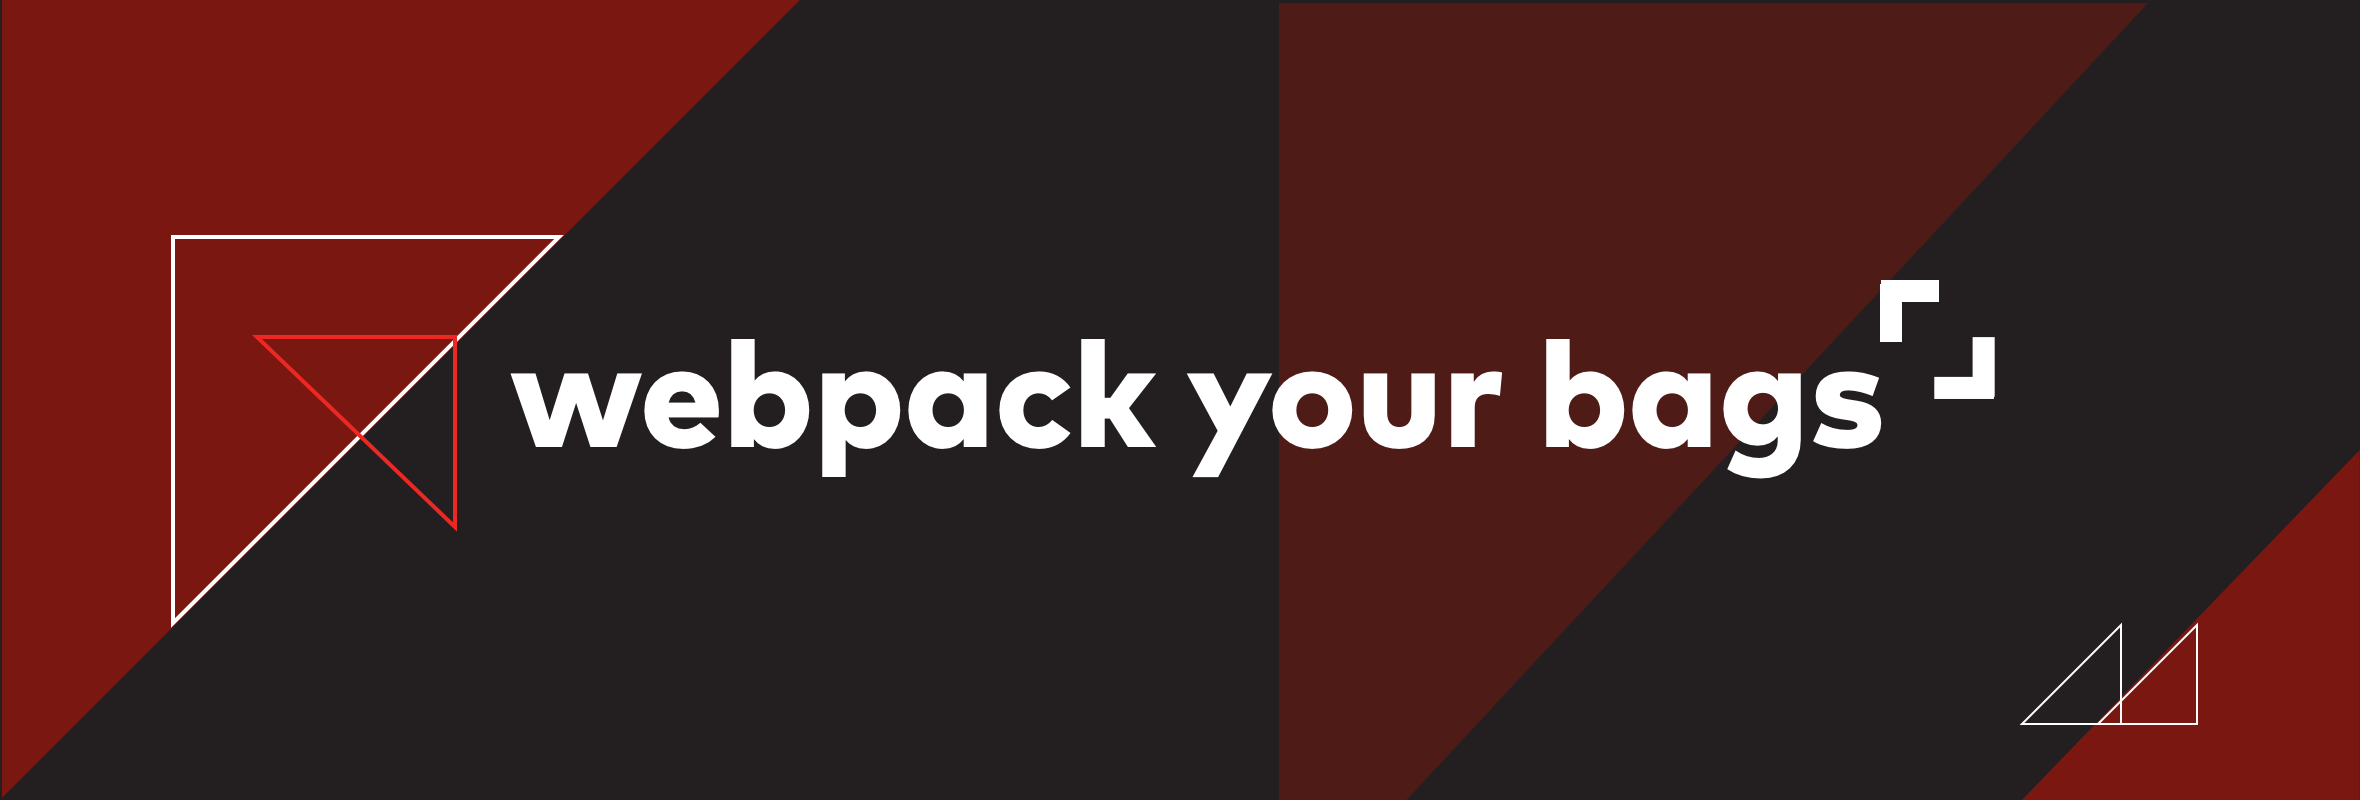 Webpack your bags - madewithlove